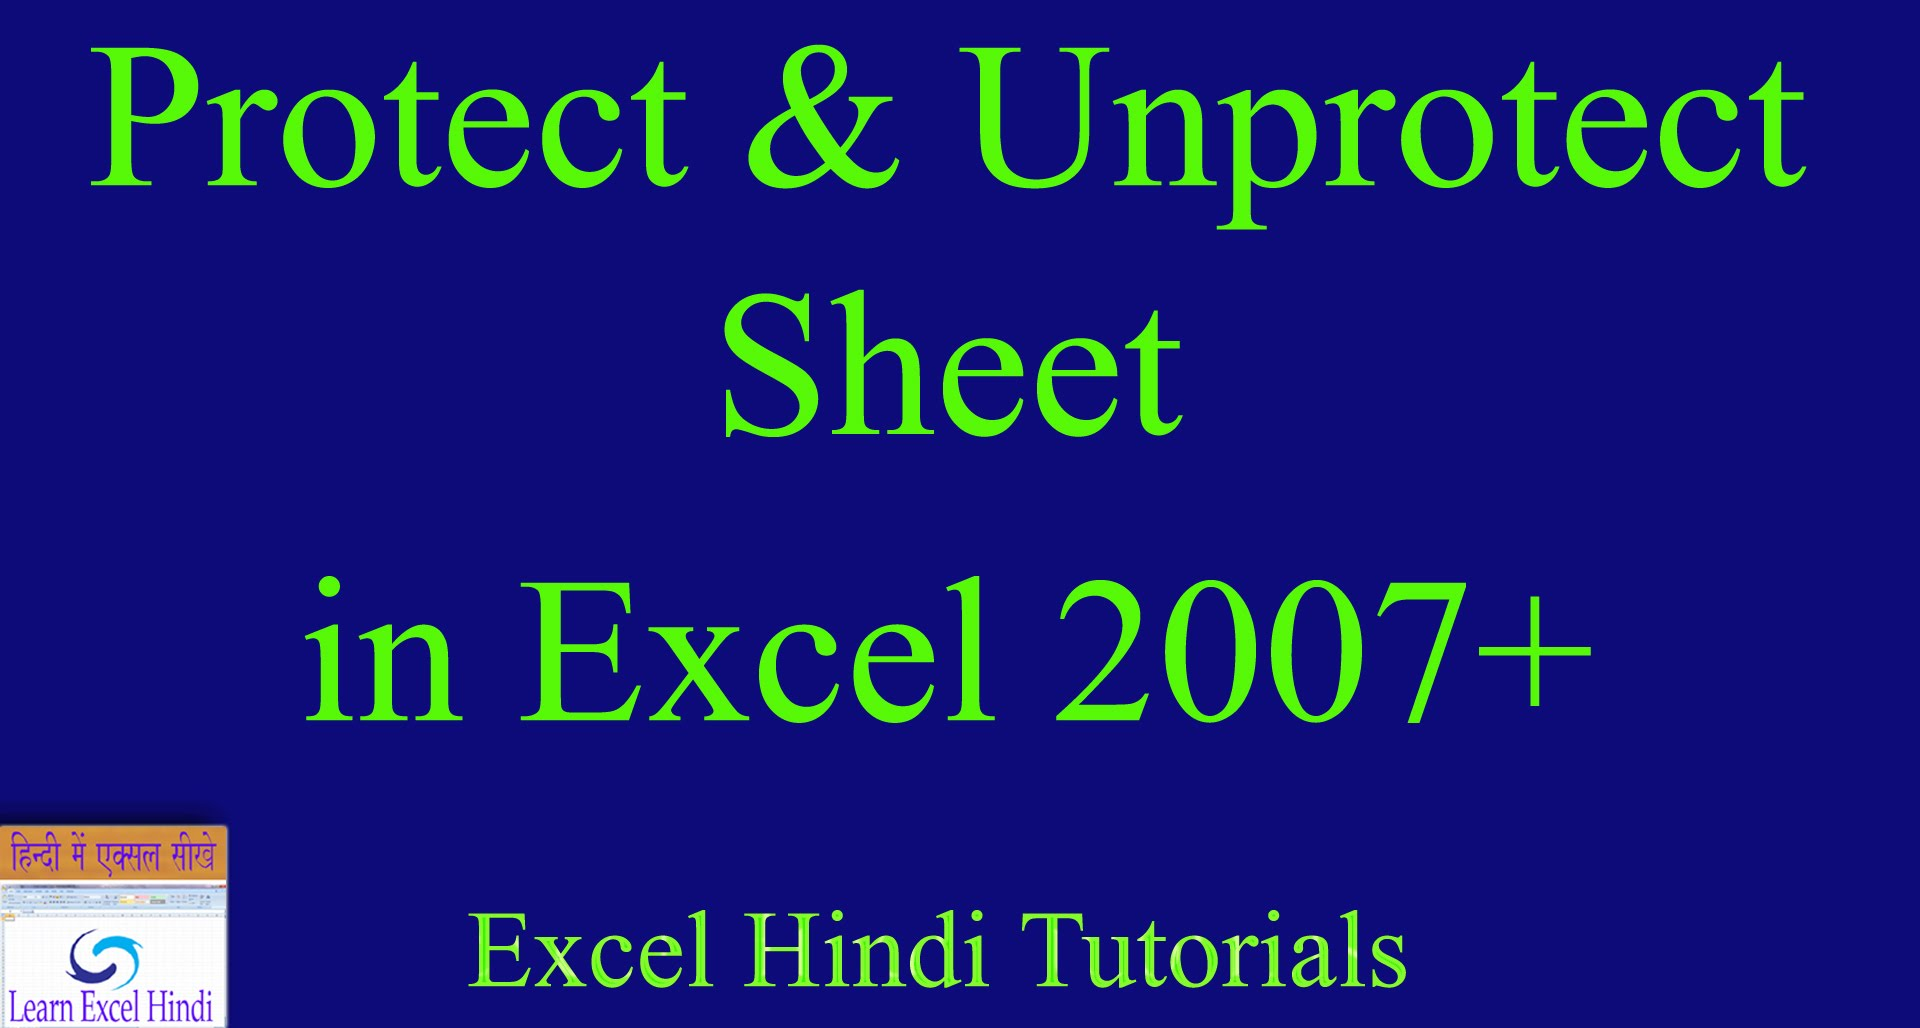 how to unprotect excel sheet 2010 if forgot password